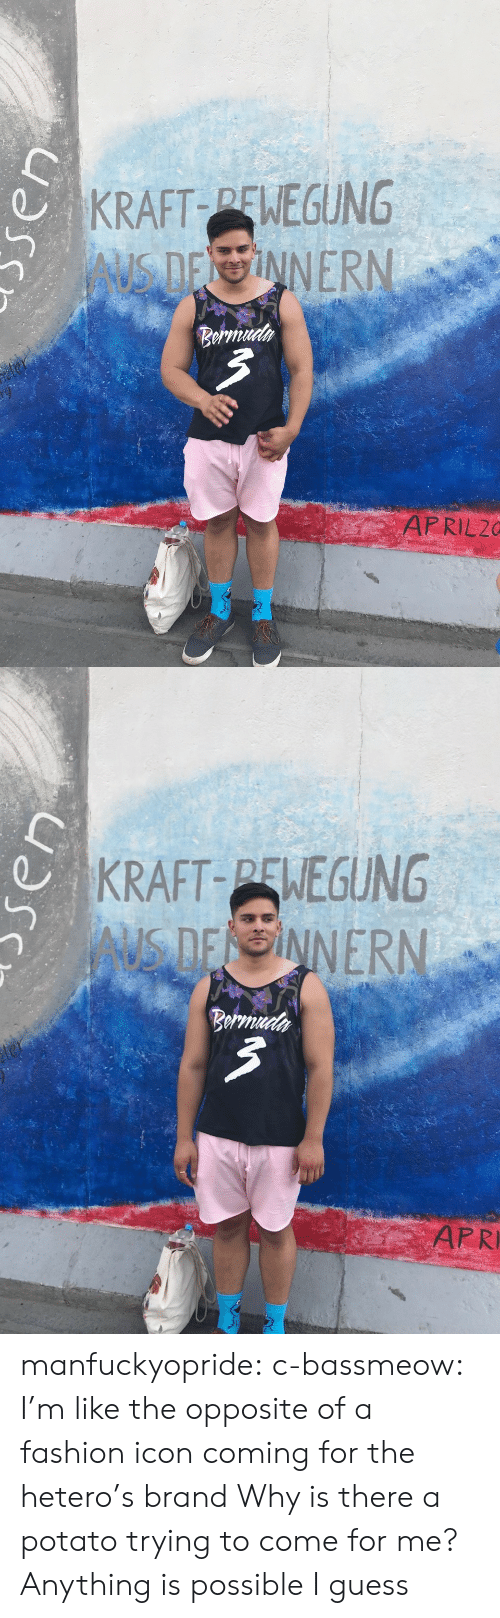 Anything Is Possible: KRAFT PENEGUNG  Beru  APRIL20   KRAFT-PENEGUNG  AUS D  ER  ARRI manfuckyopride:  c-bassmeow: I'm like the opposite of a fashion icon coming for the hetero's brand  Why is there a potato trying to come for me? Anything is possible I guess